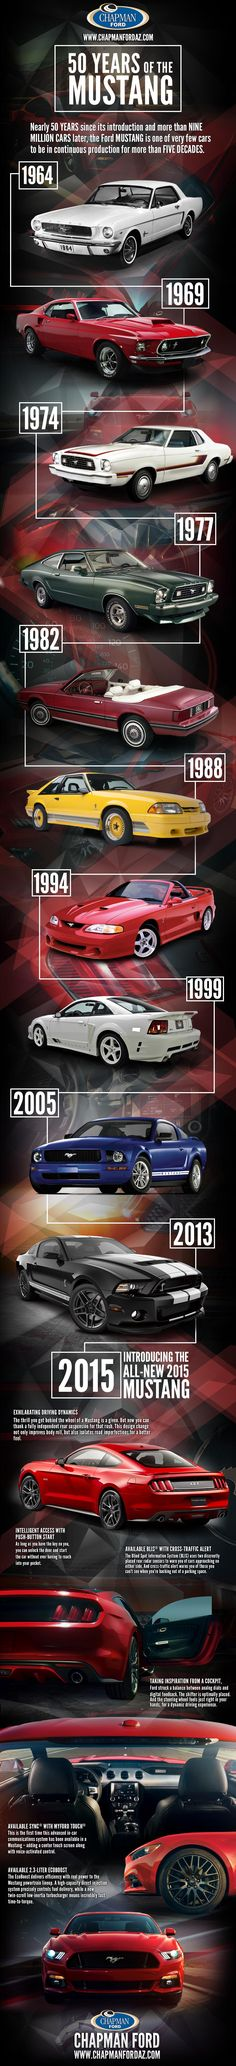 50 Years of the Ford Mustang. #Infographic #WhiteMarshFord